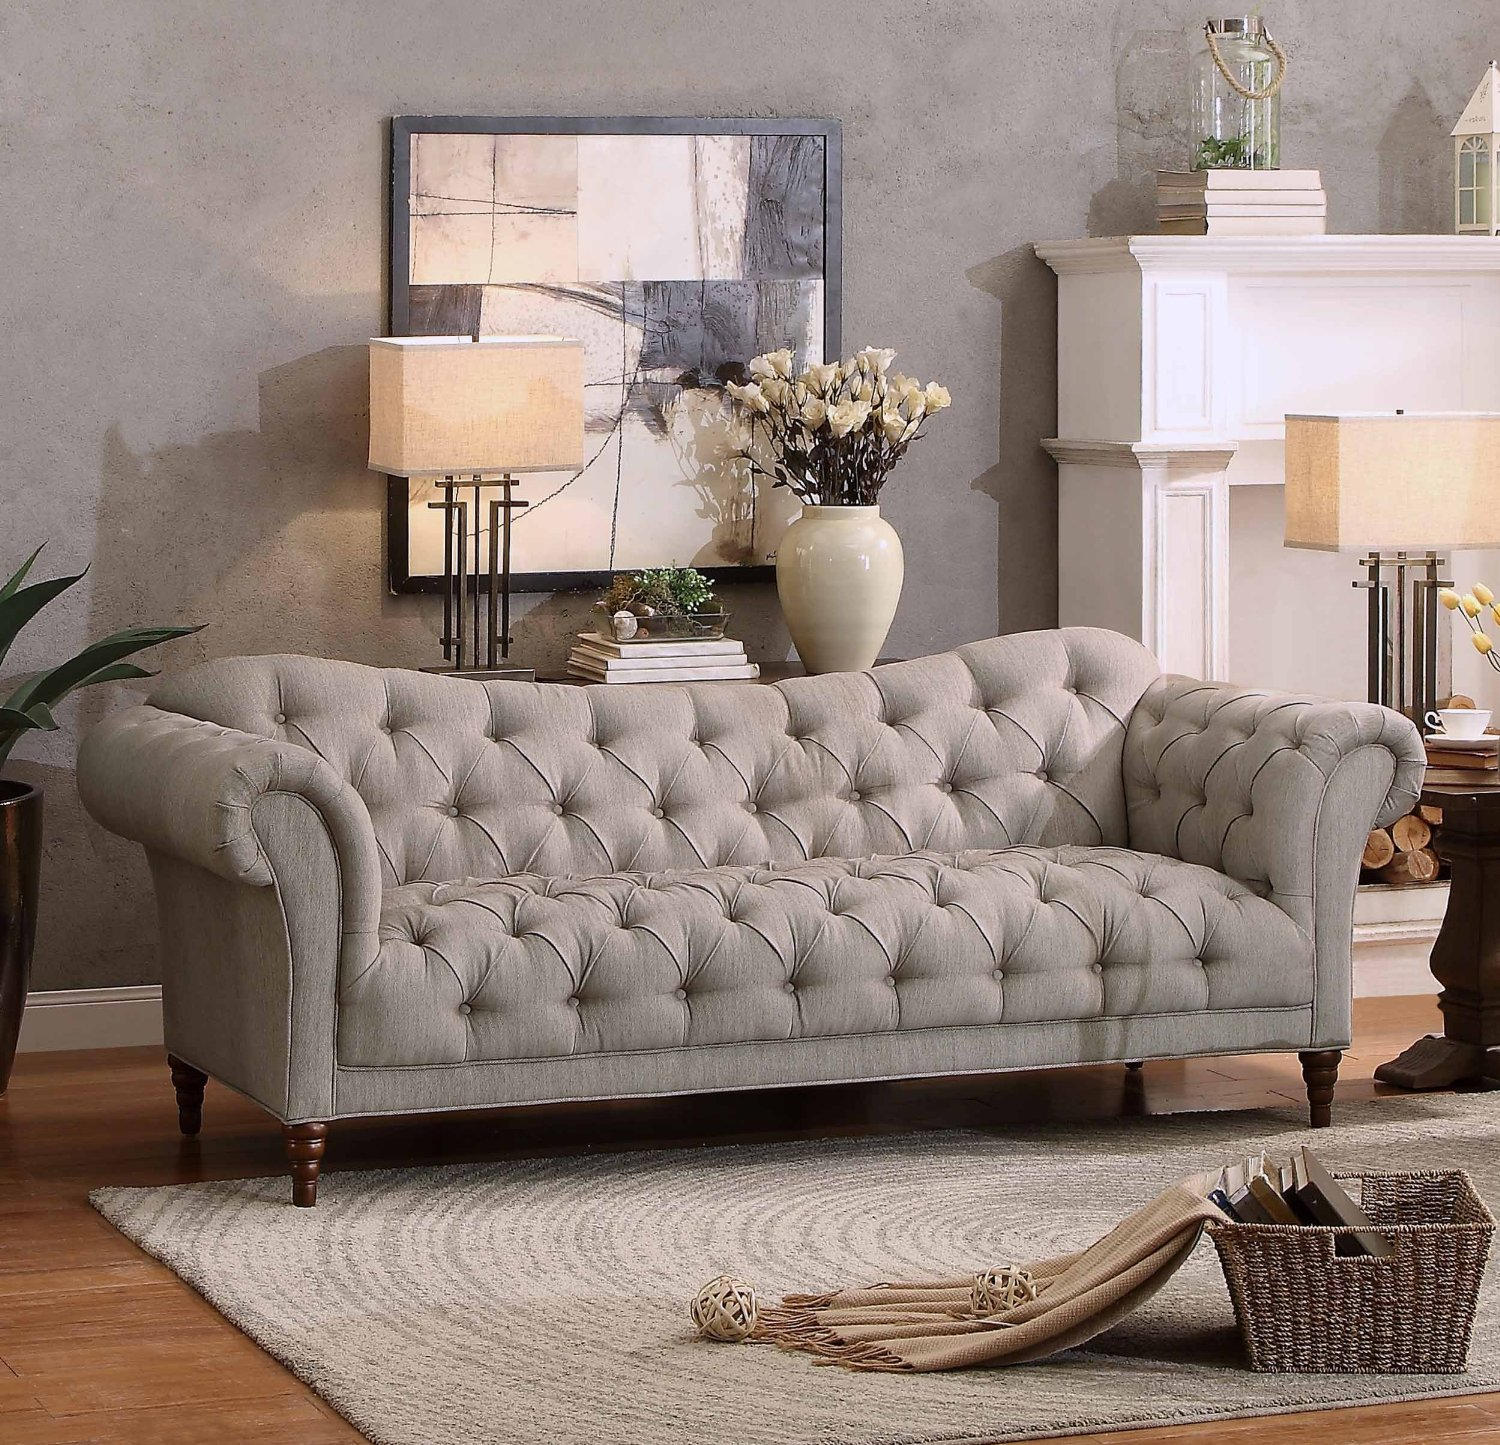 Buy A Chesterfield Sofa 25 Best Chesterfield Sofas To Buy In 2017